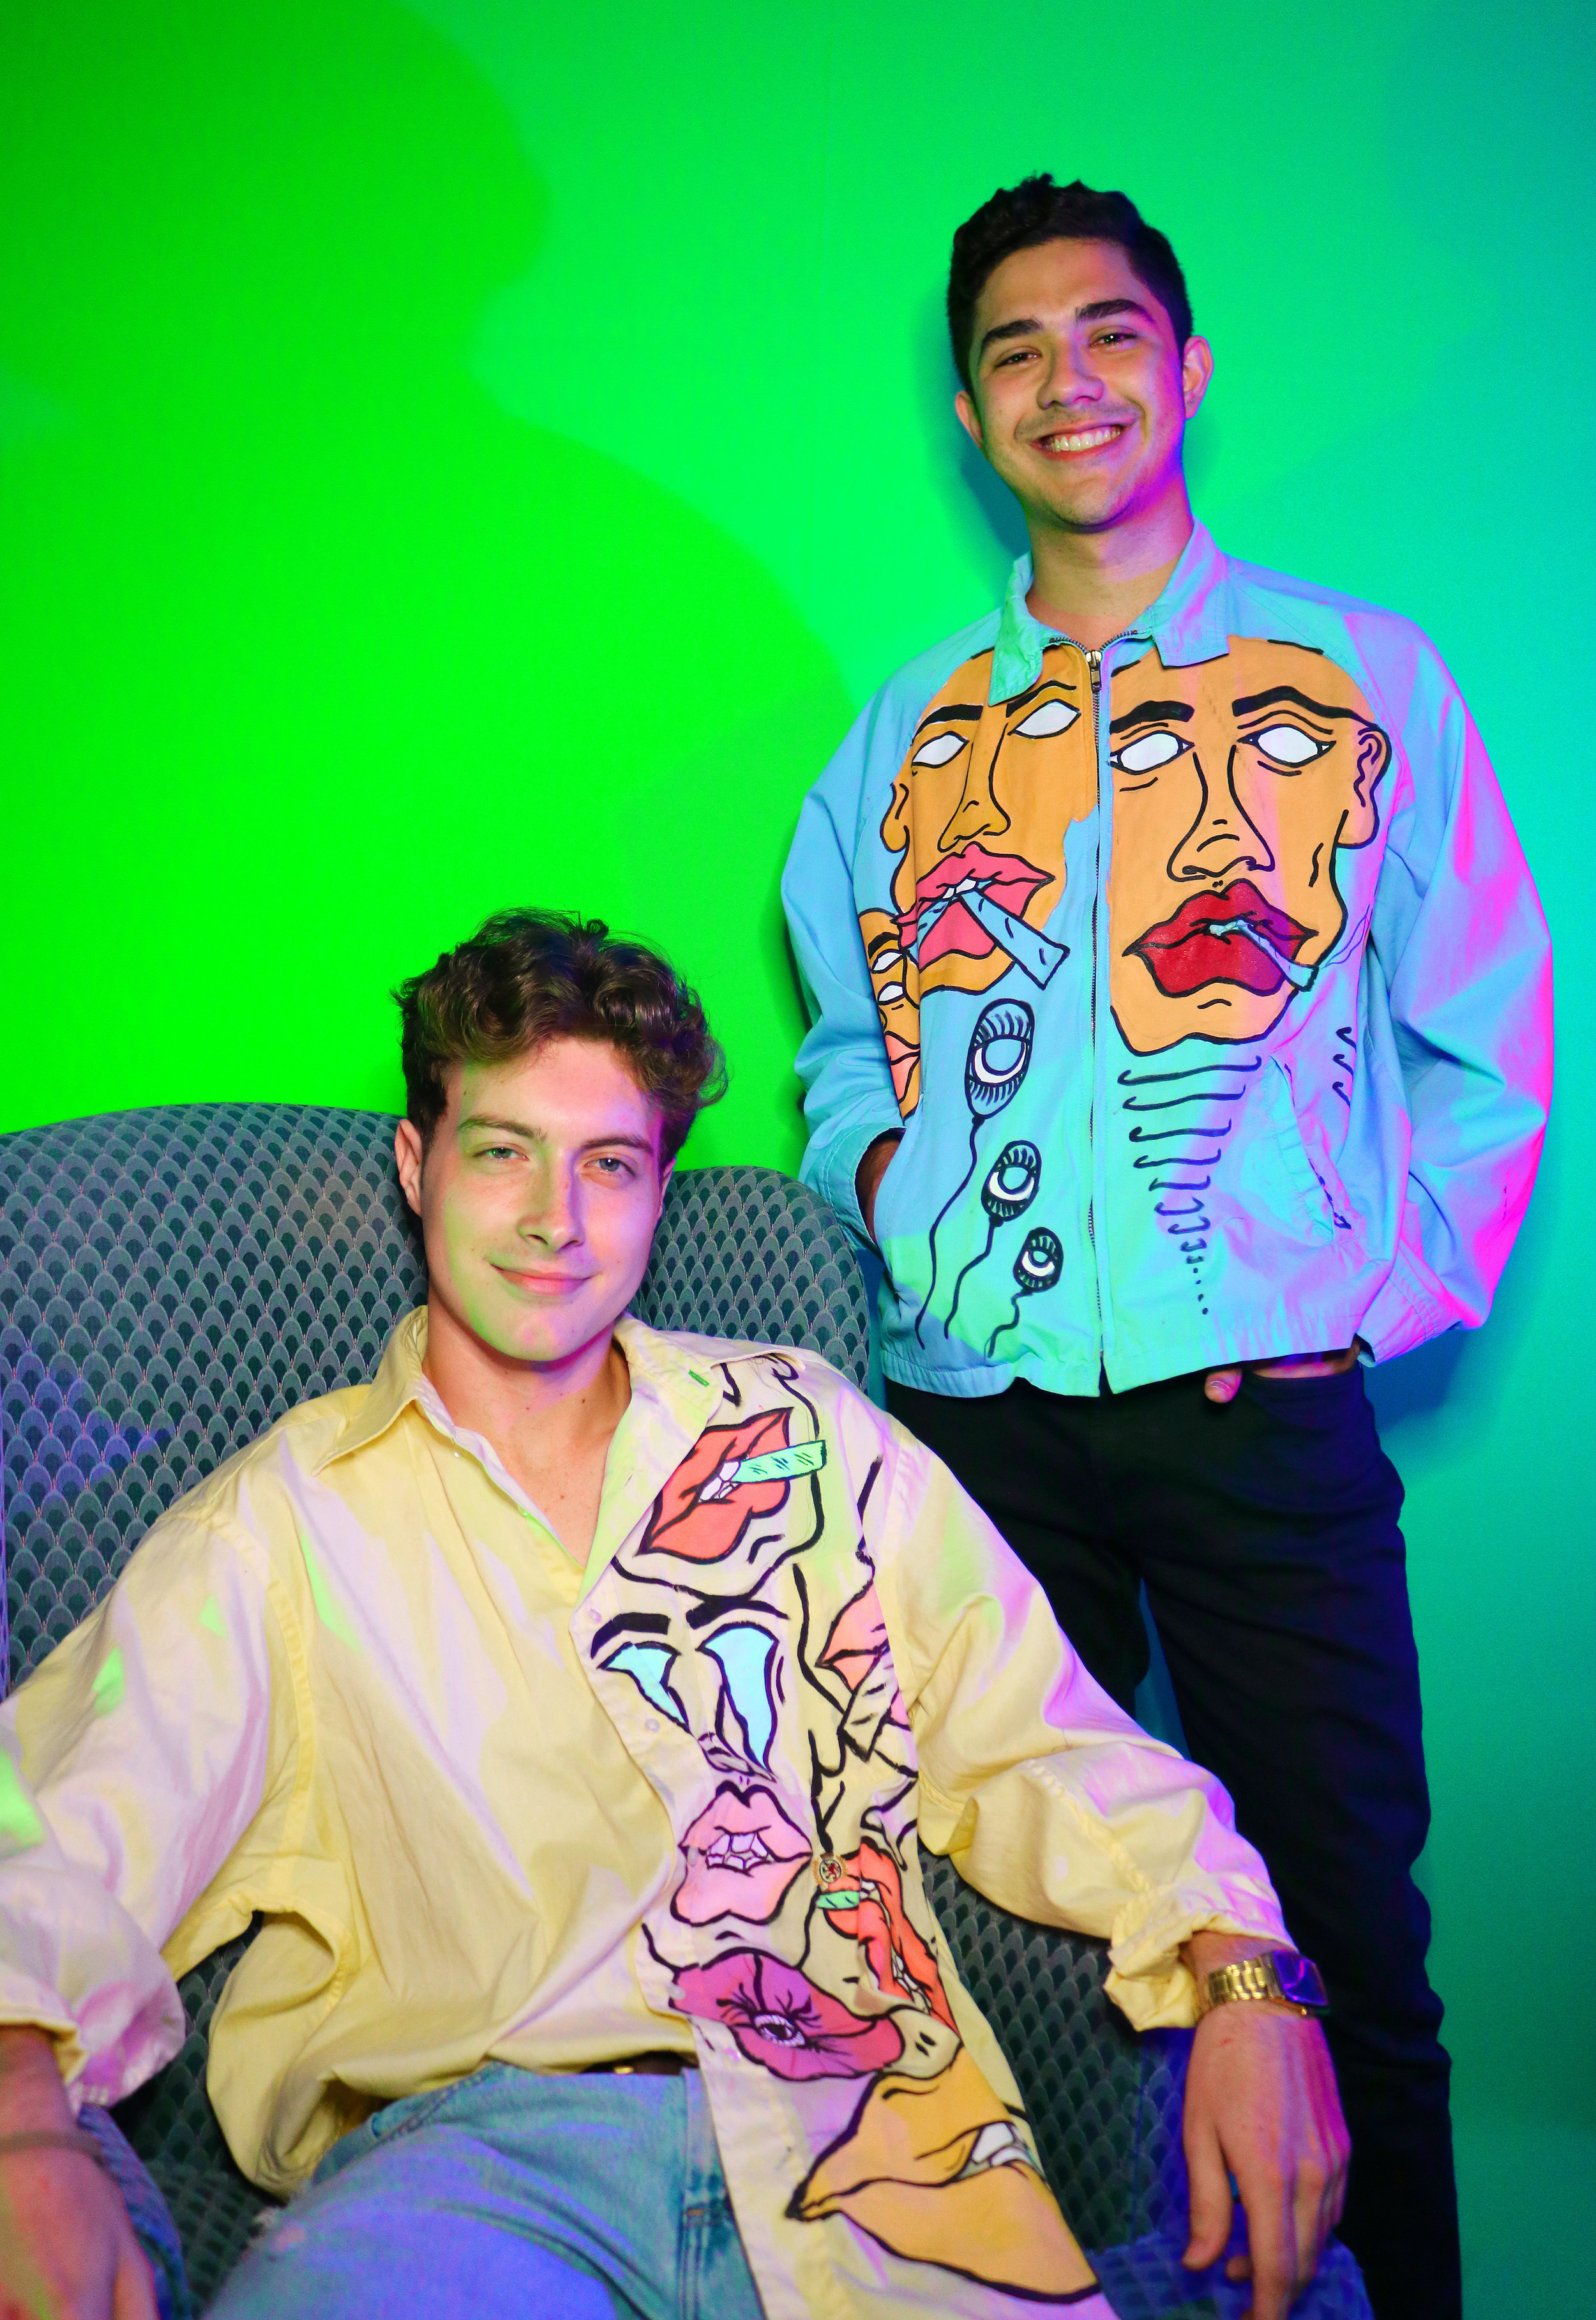 Rob Deutschman and Carlos Sanchez styled by Julia R. and photographed by me.